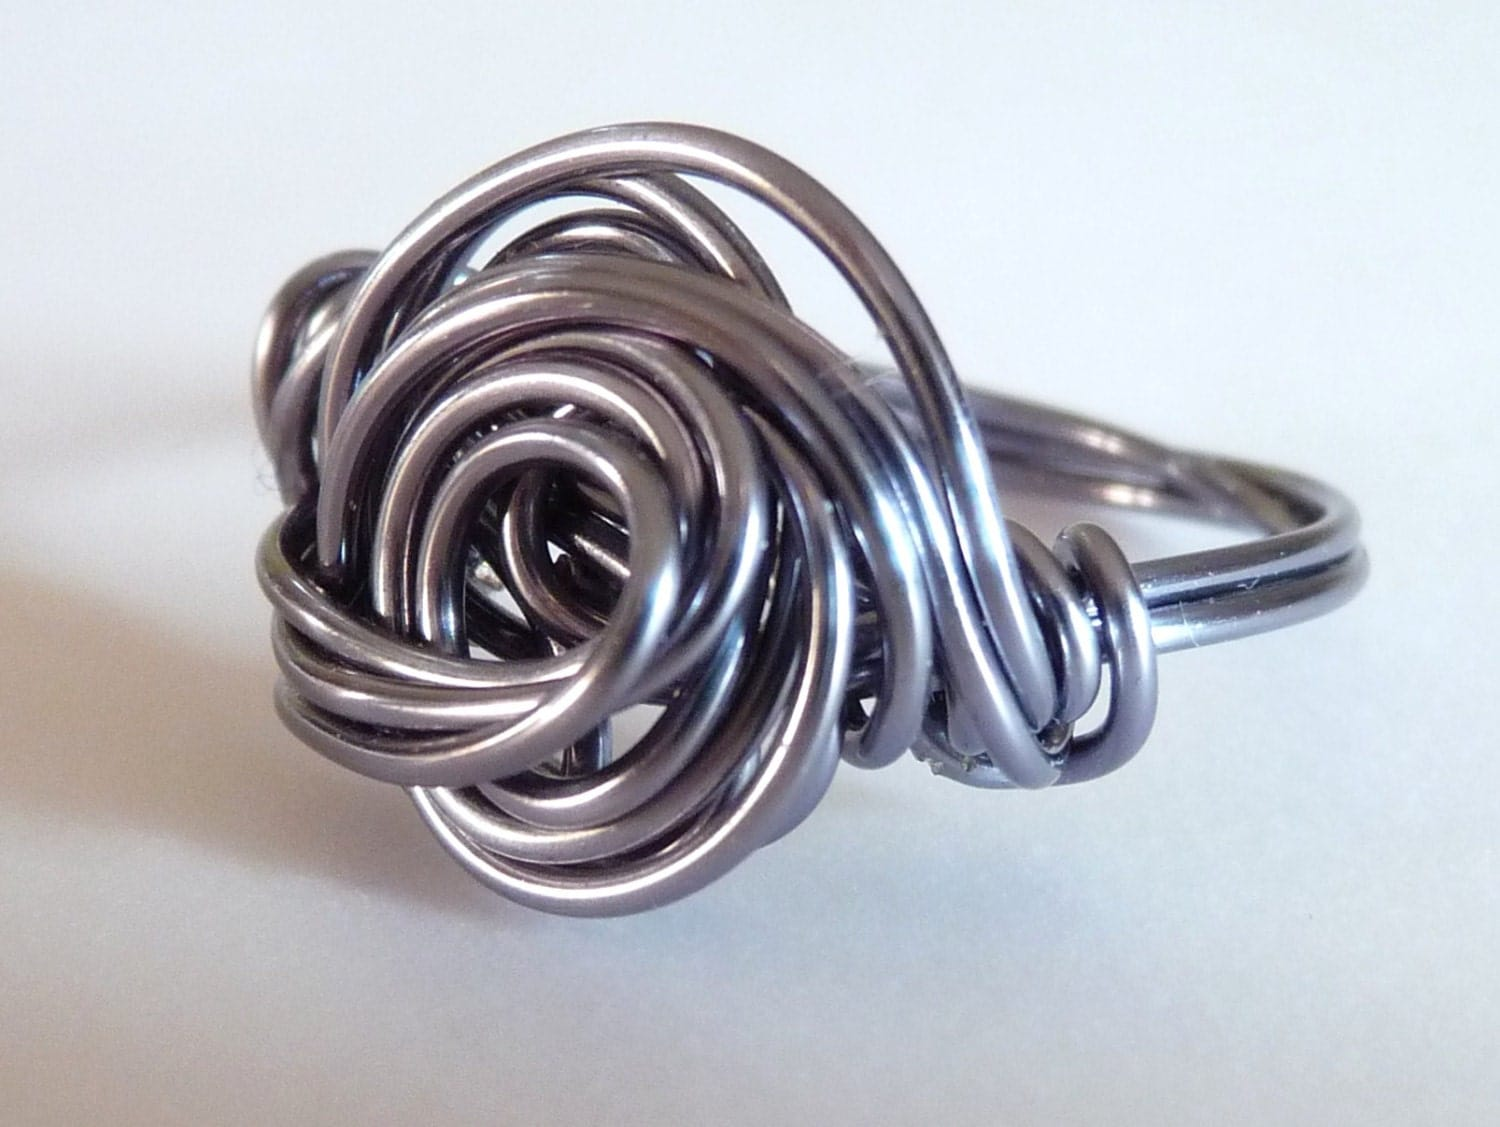 wire ring love knot celtic knot friendship ring wrapped. Black Bedroom Furniture Sets. Home Design Ideas